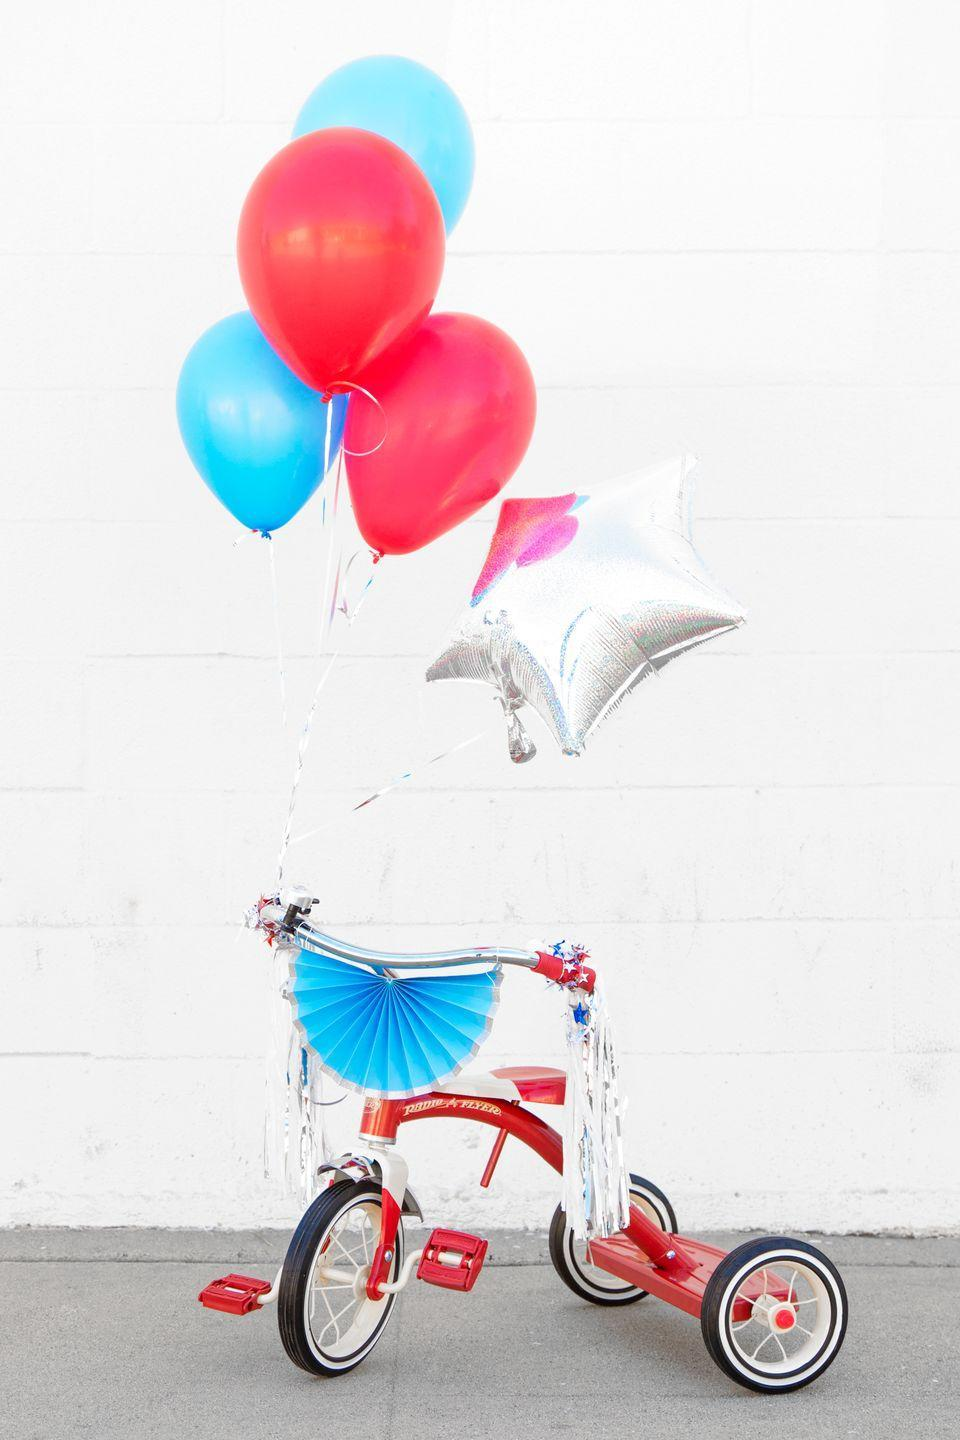 """<p>Hosting a block party? Have all of the kids decorate their bikes, then have a neighborhood bike parade. Hand out prizes for the most festive execution. </p><p><a class=""""link rapid-noclick-resp"""" href=""""https://studiodiy.com/diy-fourth-july-balloon-bikes/"""" rel=""""nofollow noopener"""" target=""""_blank"""" data-ylk=""""slk:GET THE TUTORIAL"""">GET THE TUTORIAL</a></p><p><a class=""""link rapid-noclick-resp"""" href=""""https://www.amazon.com/White-Patriotic-Crepe-Paper-Streamers/dp/B00BFX7AEU?tag=syn-yahoo-20&ascsubtag=%5Bartid%7C10072.g.32715018%5Bsrc%7Cyahoo-us"""" rel=""""nofollow noopener"""" target=""""_blank"""" data-ylk=""""slk:SHOP STREAMERS"""">SHOP STREAMERS</a></p>"""